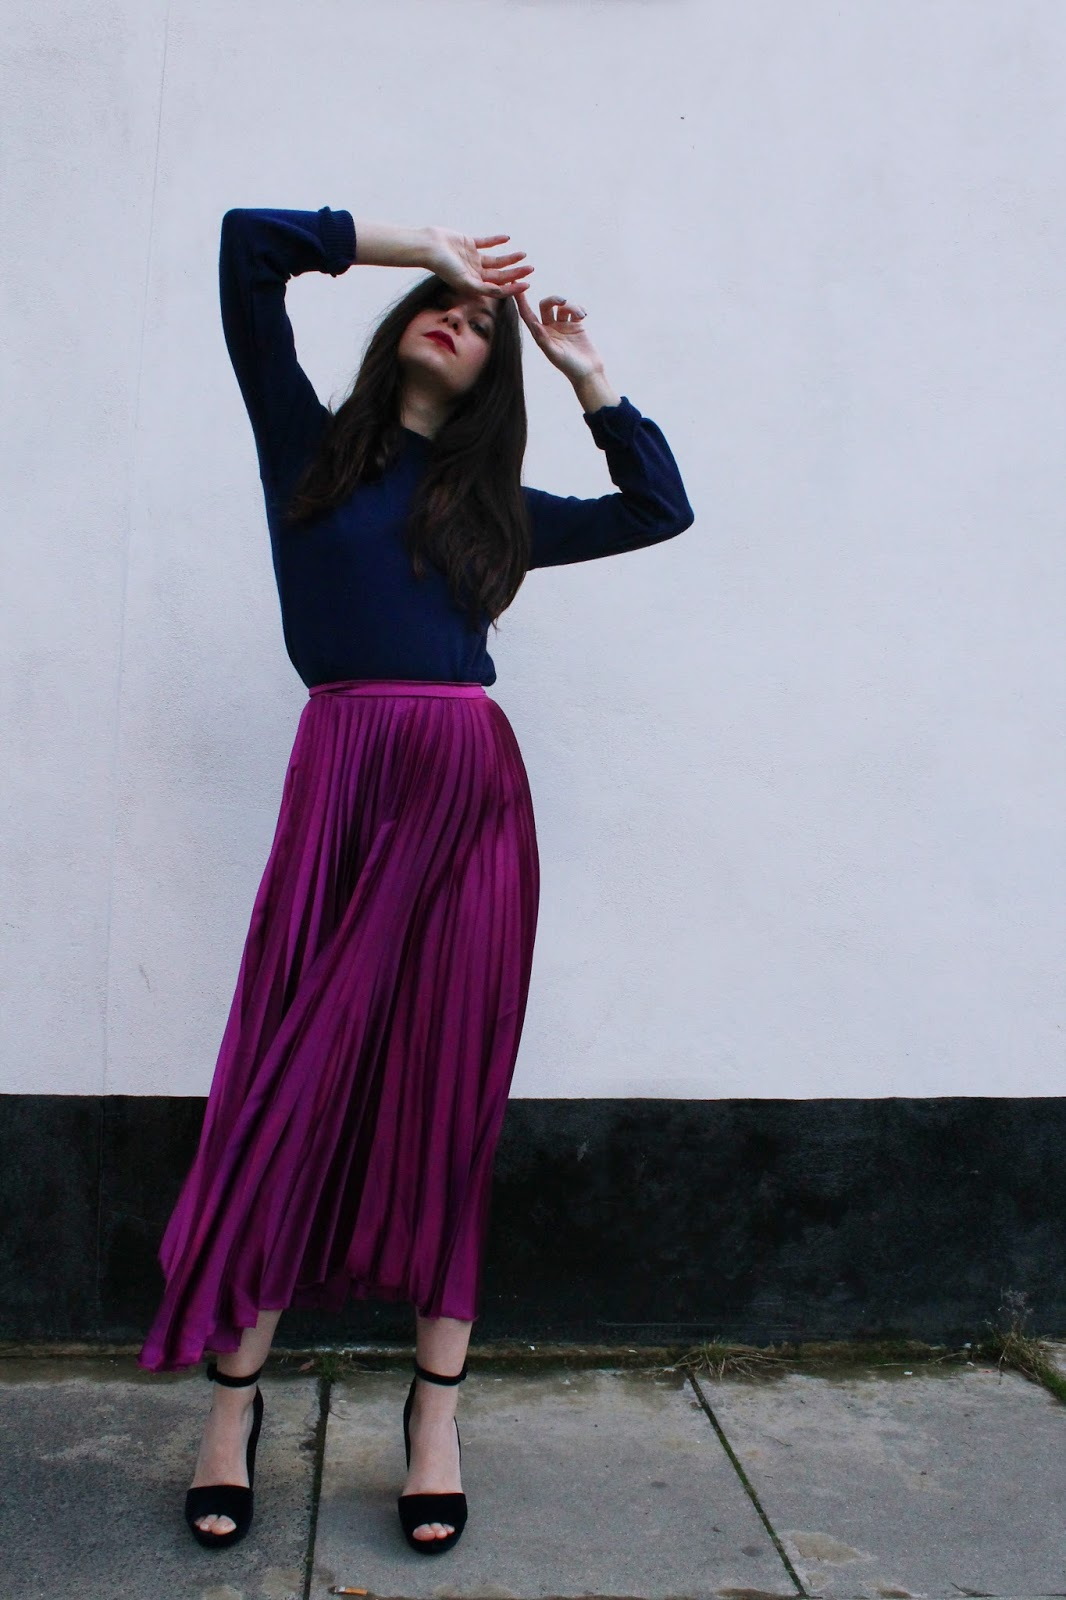 ASOS pleated midi skirt, VIDEO clothing, knitwear, knit, fbloggers, microinfluencer, velvet